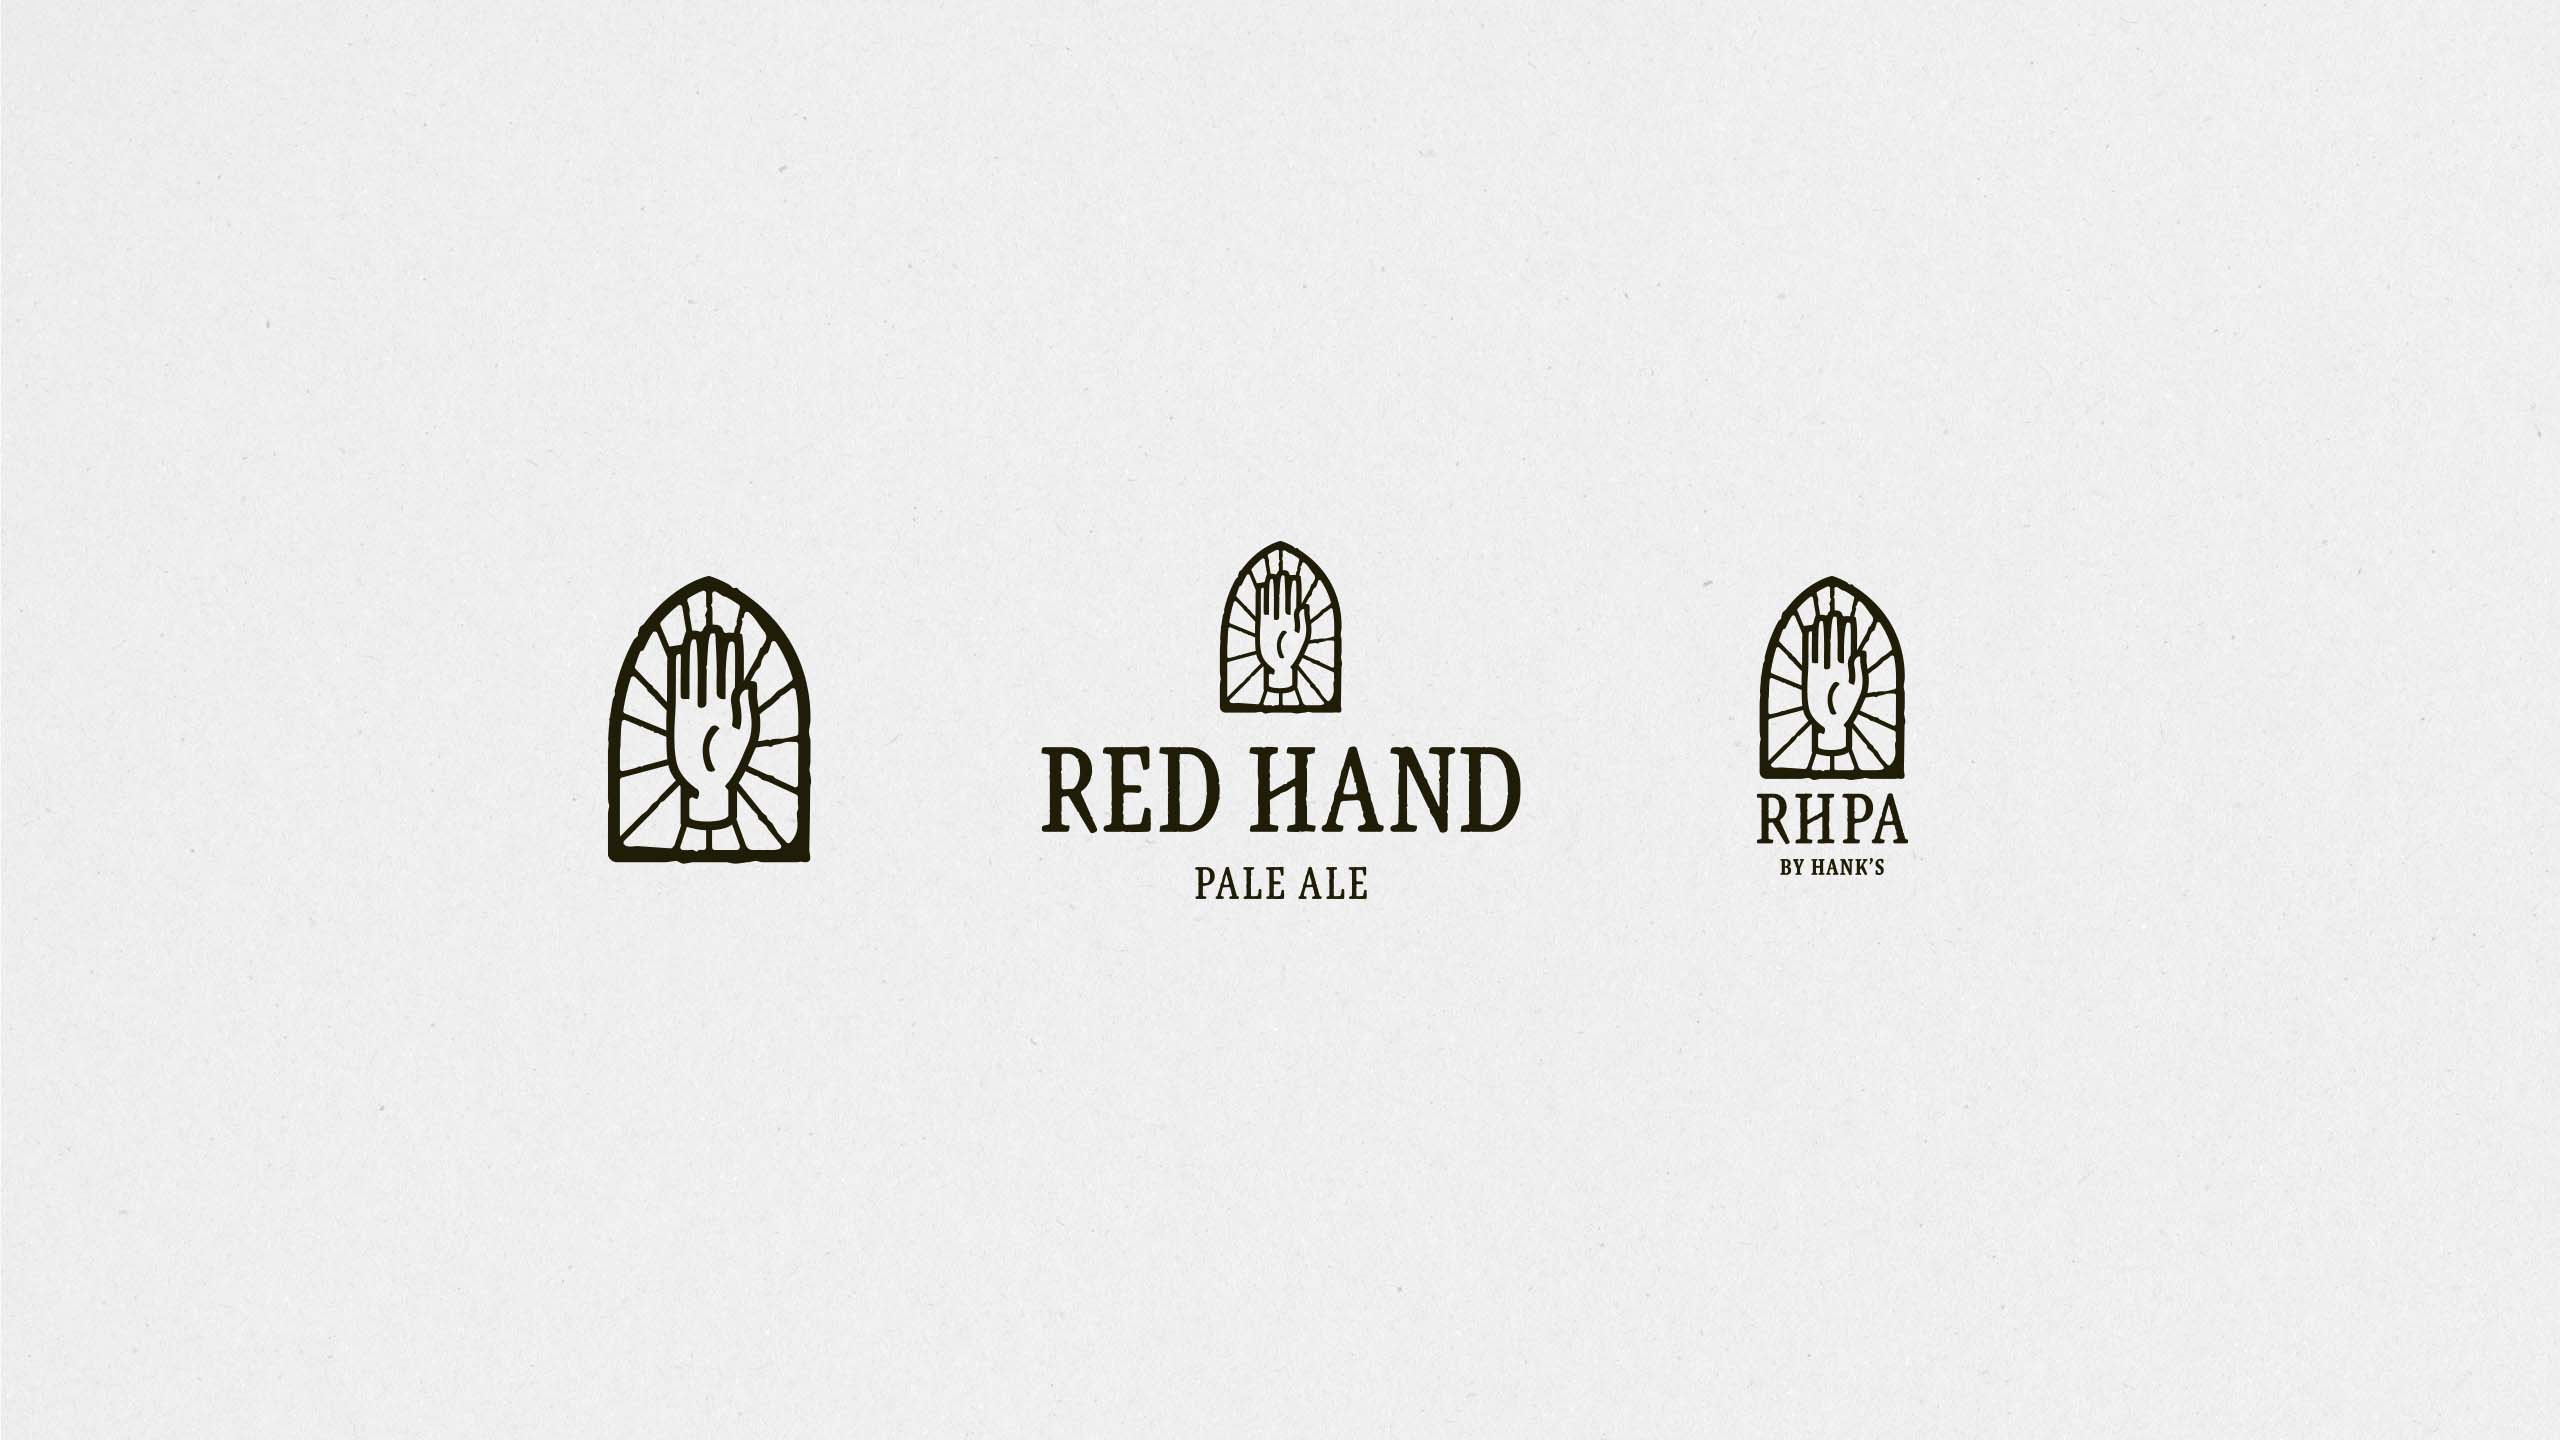 red-hand-pale-ale-set-2560×1440-1